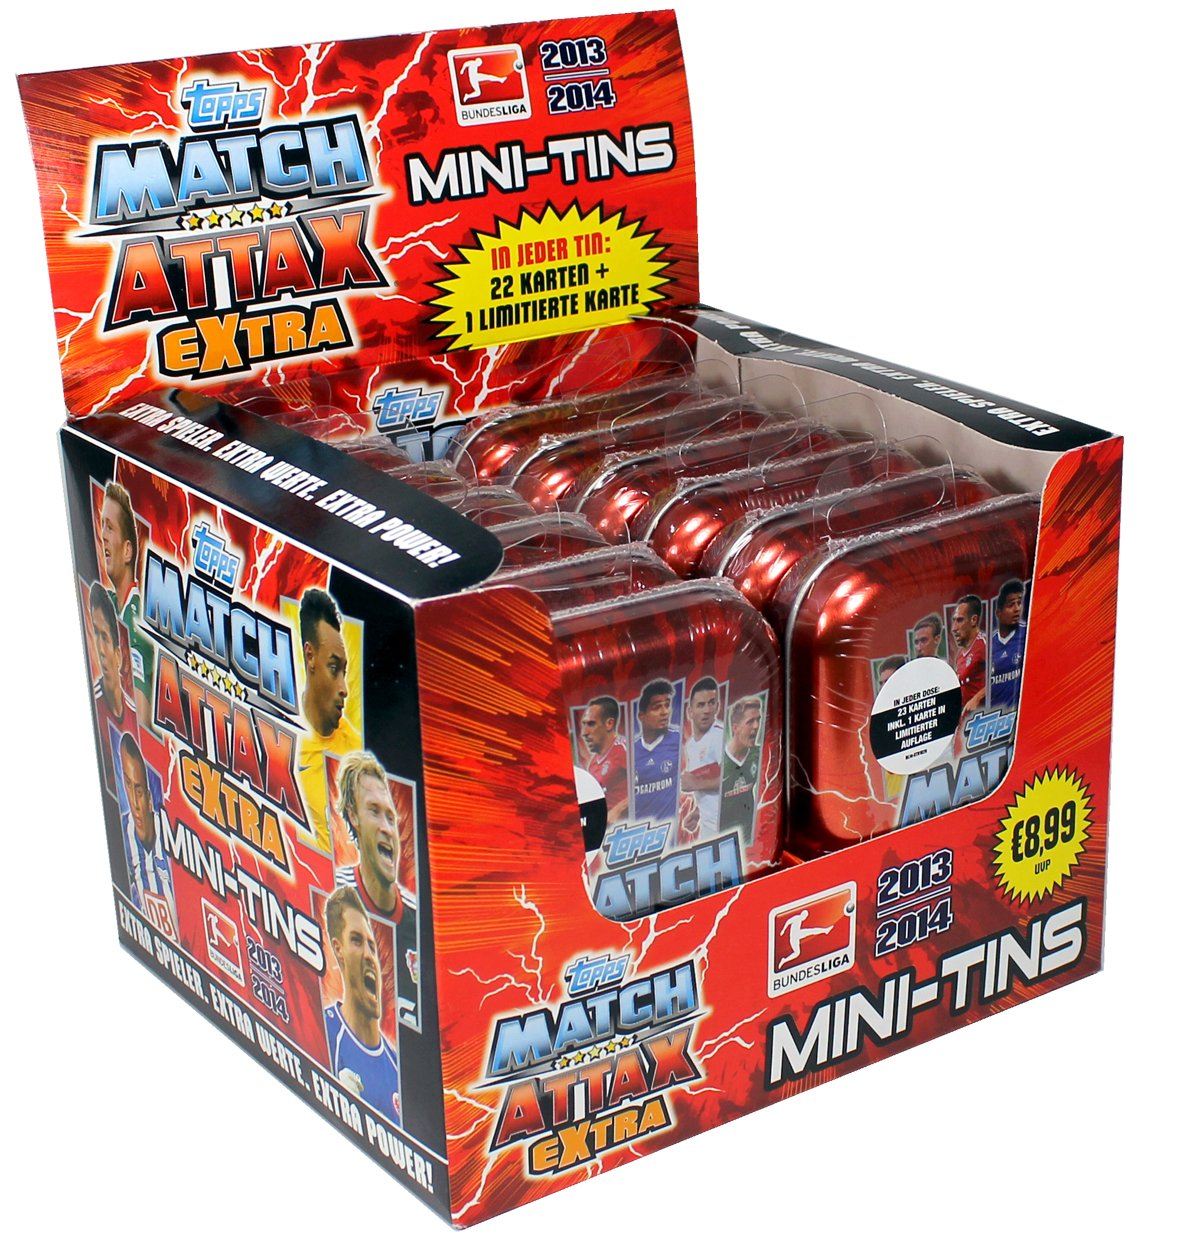 Topps Match Attax EXTRA 2013-14 Mini-Tins Display